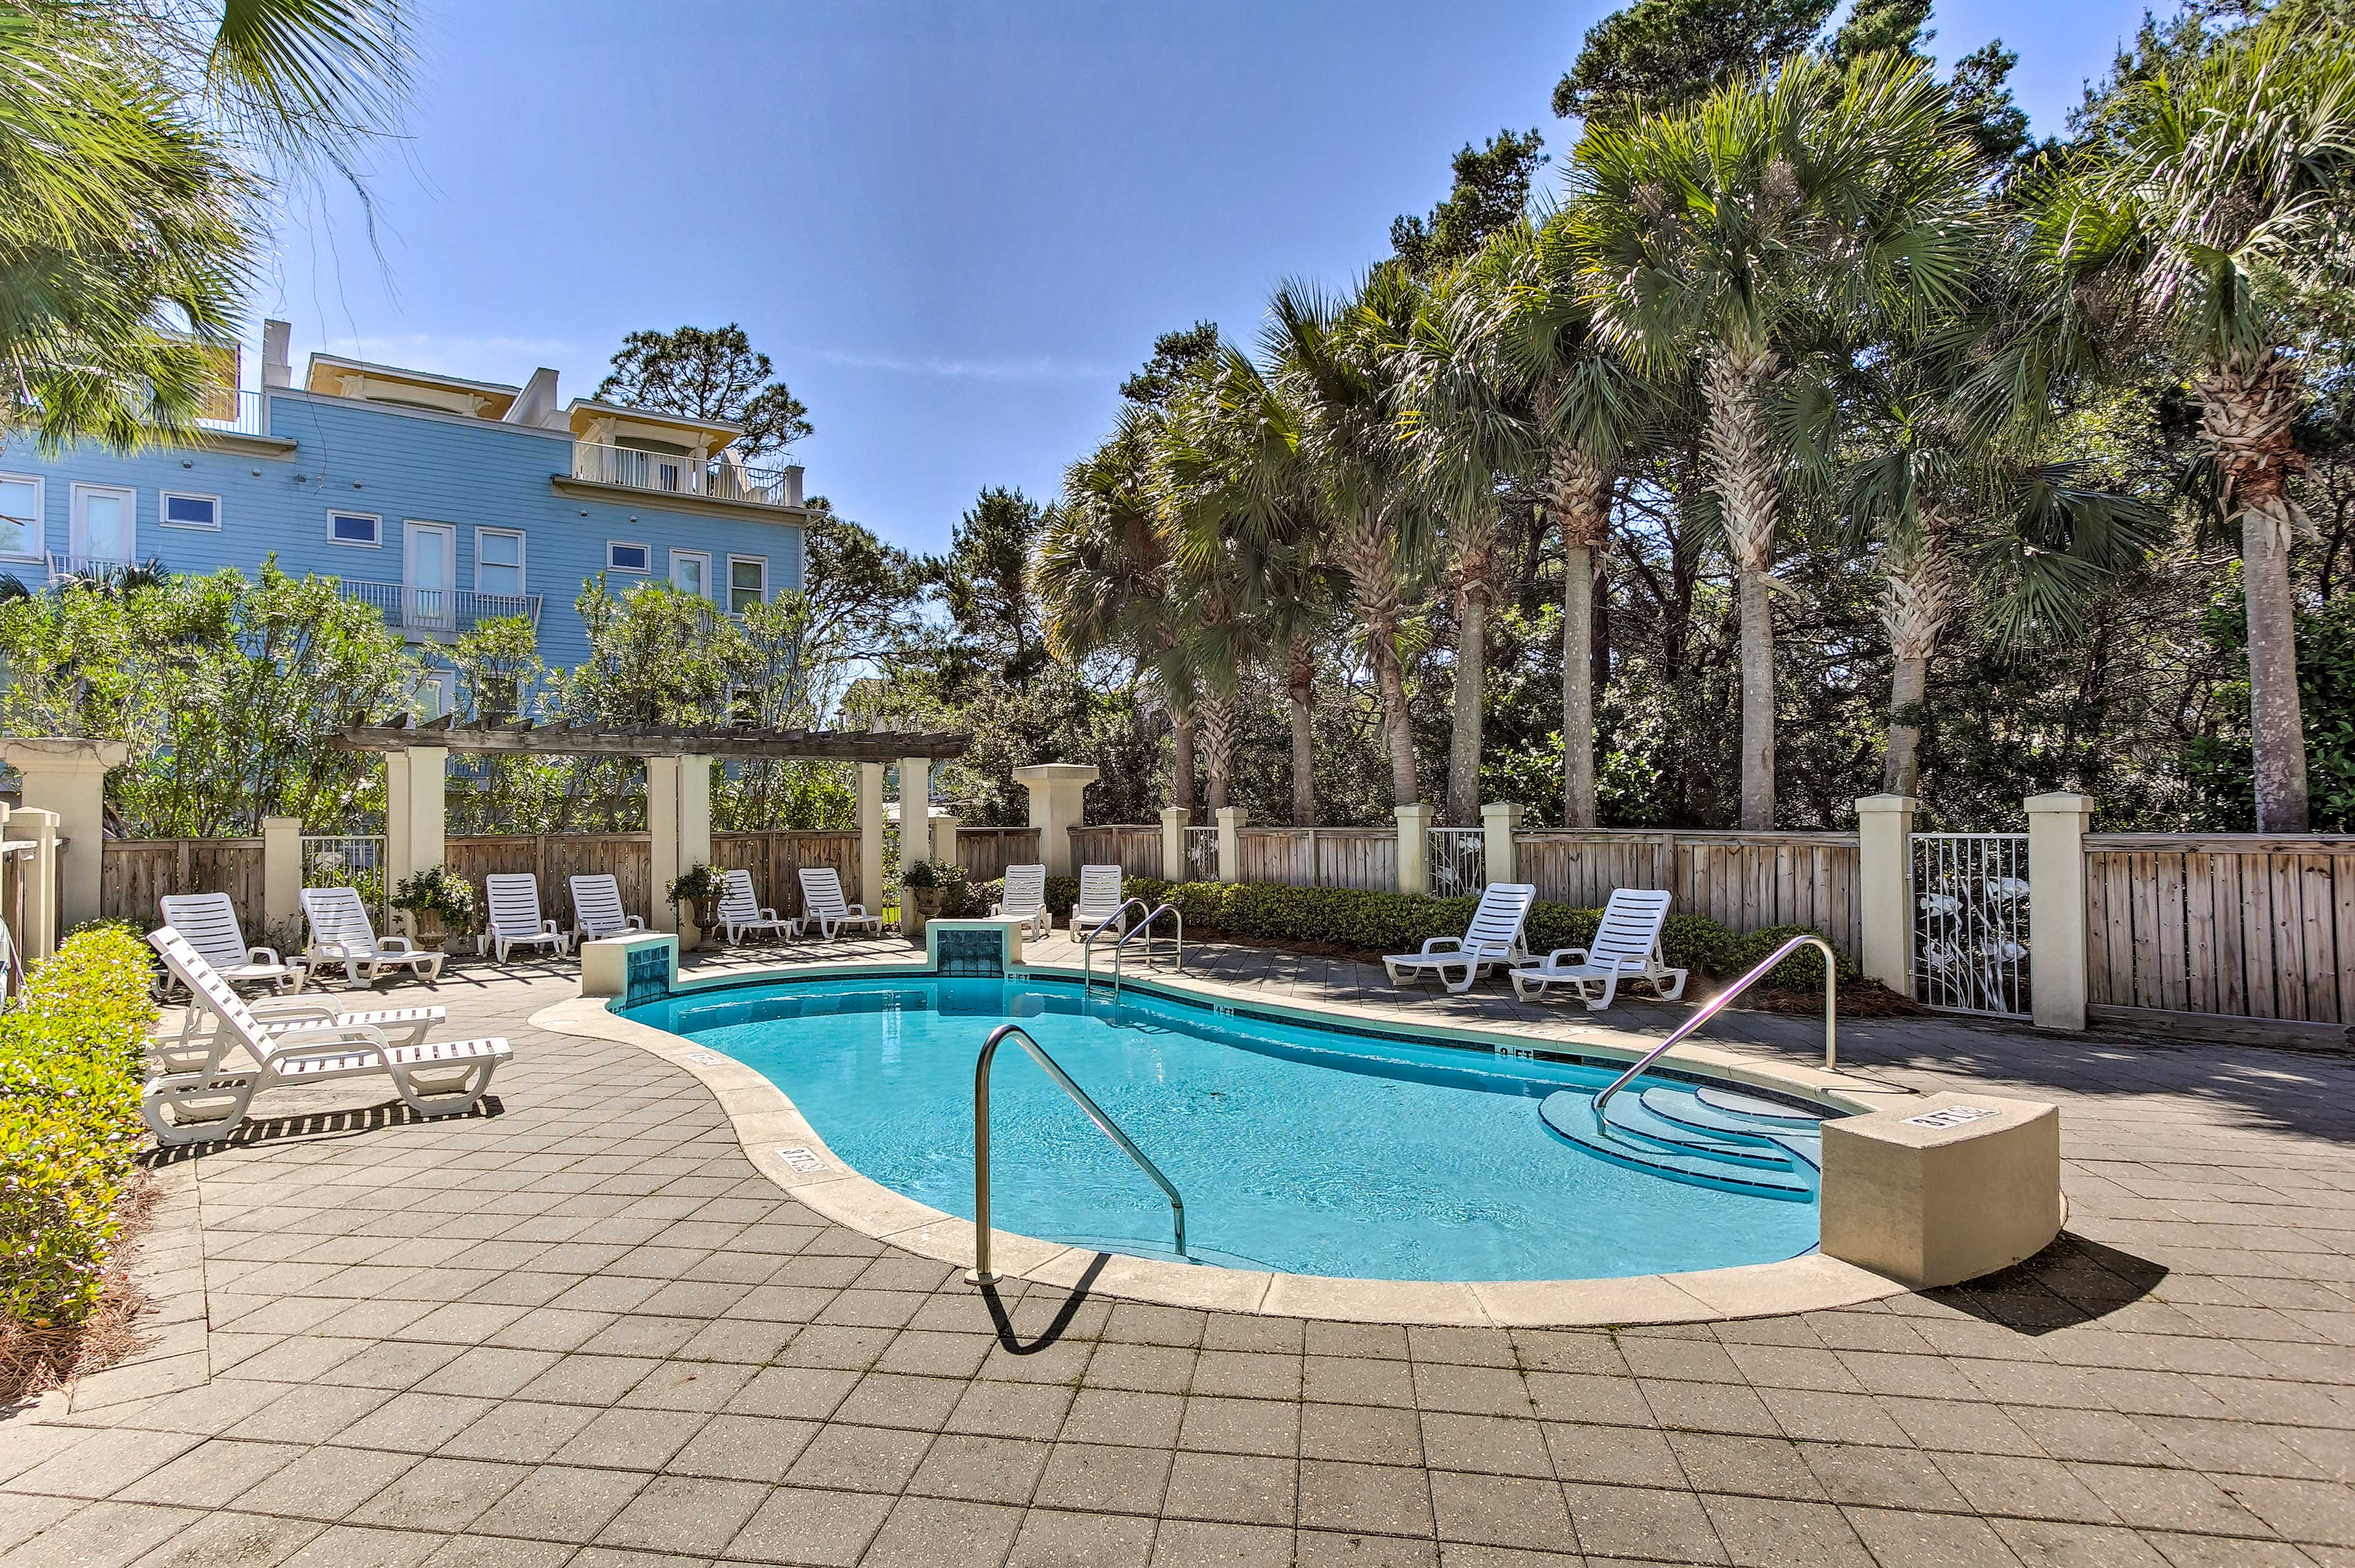 Spend an afternoon lounging by the community pool.